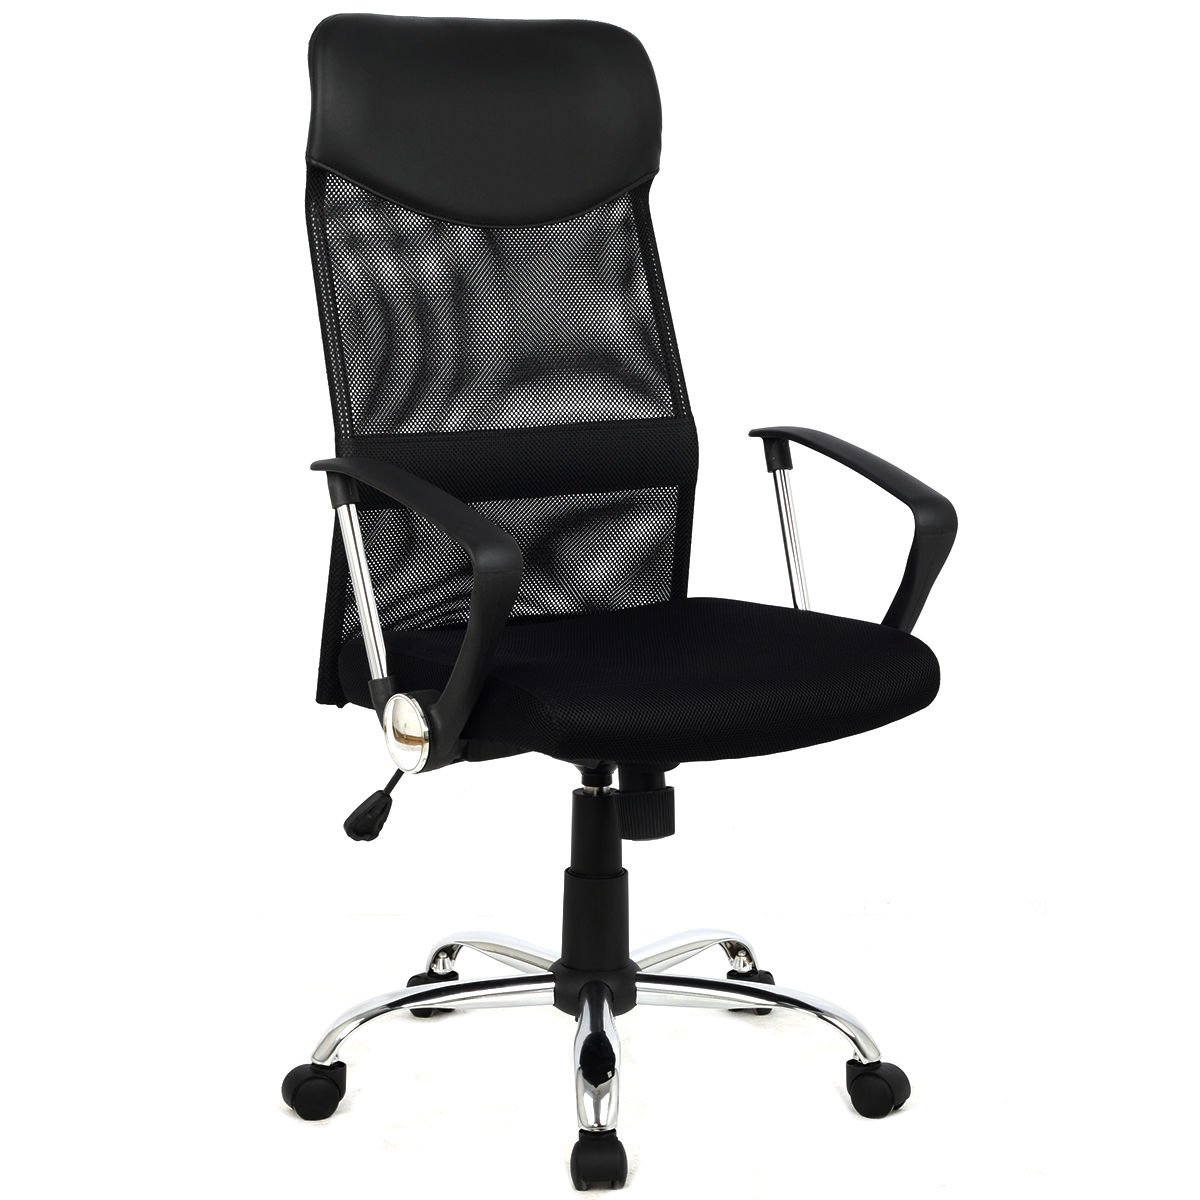 Modern Furniture 8074-BK High-Back Swivel Ergonomic Mesh/PVC Seat Desk Task Computer Swivel Lumbar Support Executive Office Chair with Seat Height Adjustment by mck (Image #1)